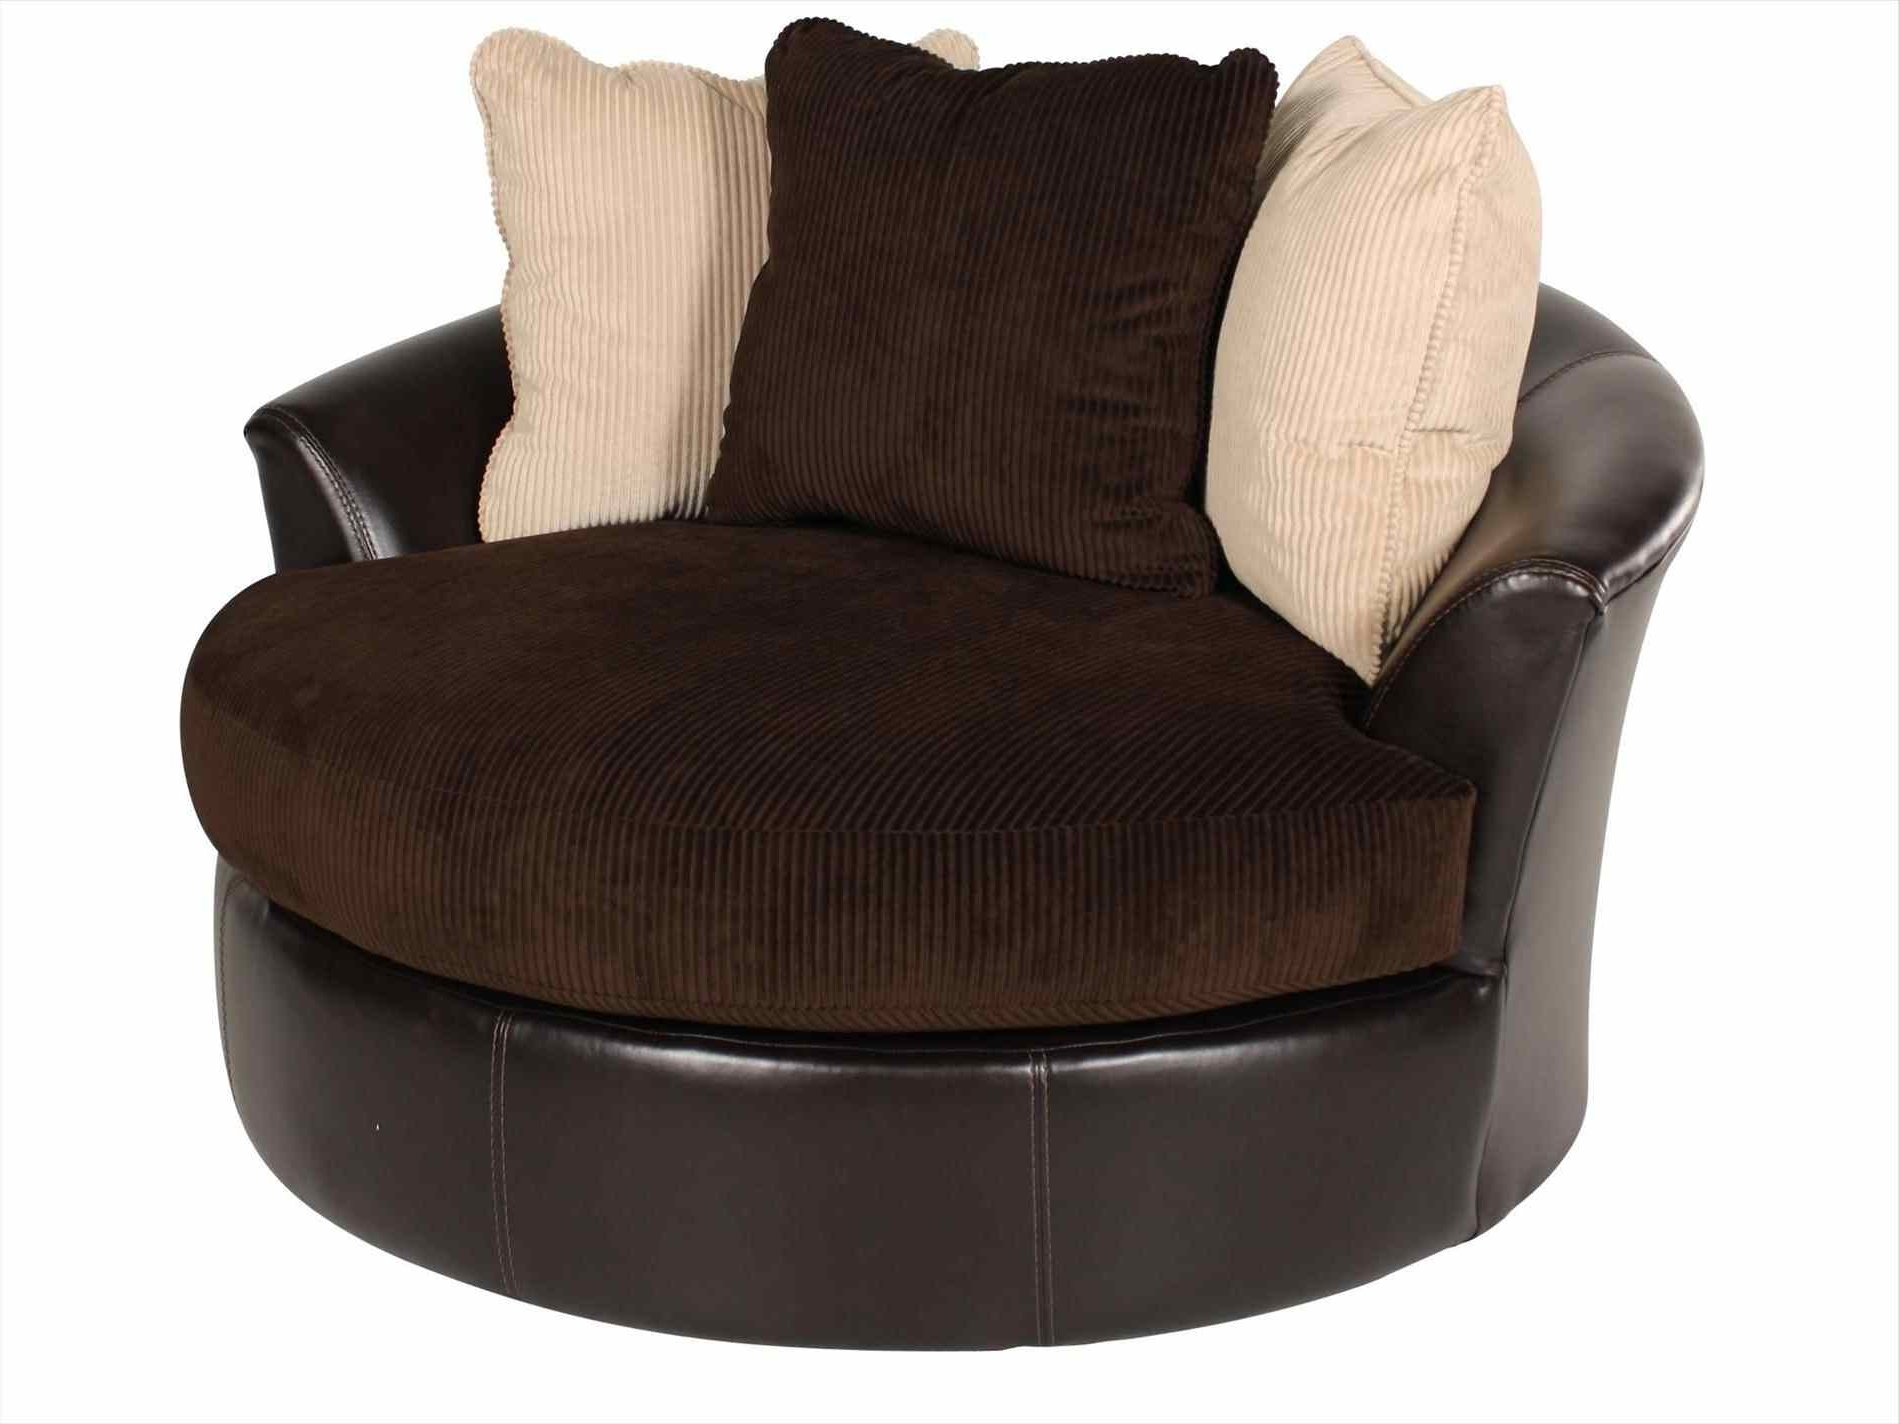 Popular Sofa : Round Spinning Sofa Chair Round Sofa Chair Dfs Giant Round Throughout Spinning Sofa Chairs (View 12 of 20)